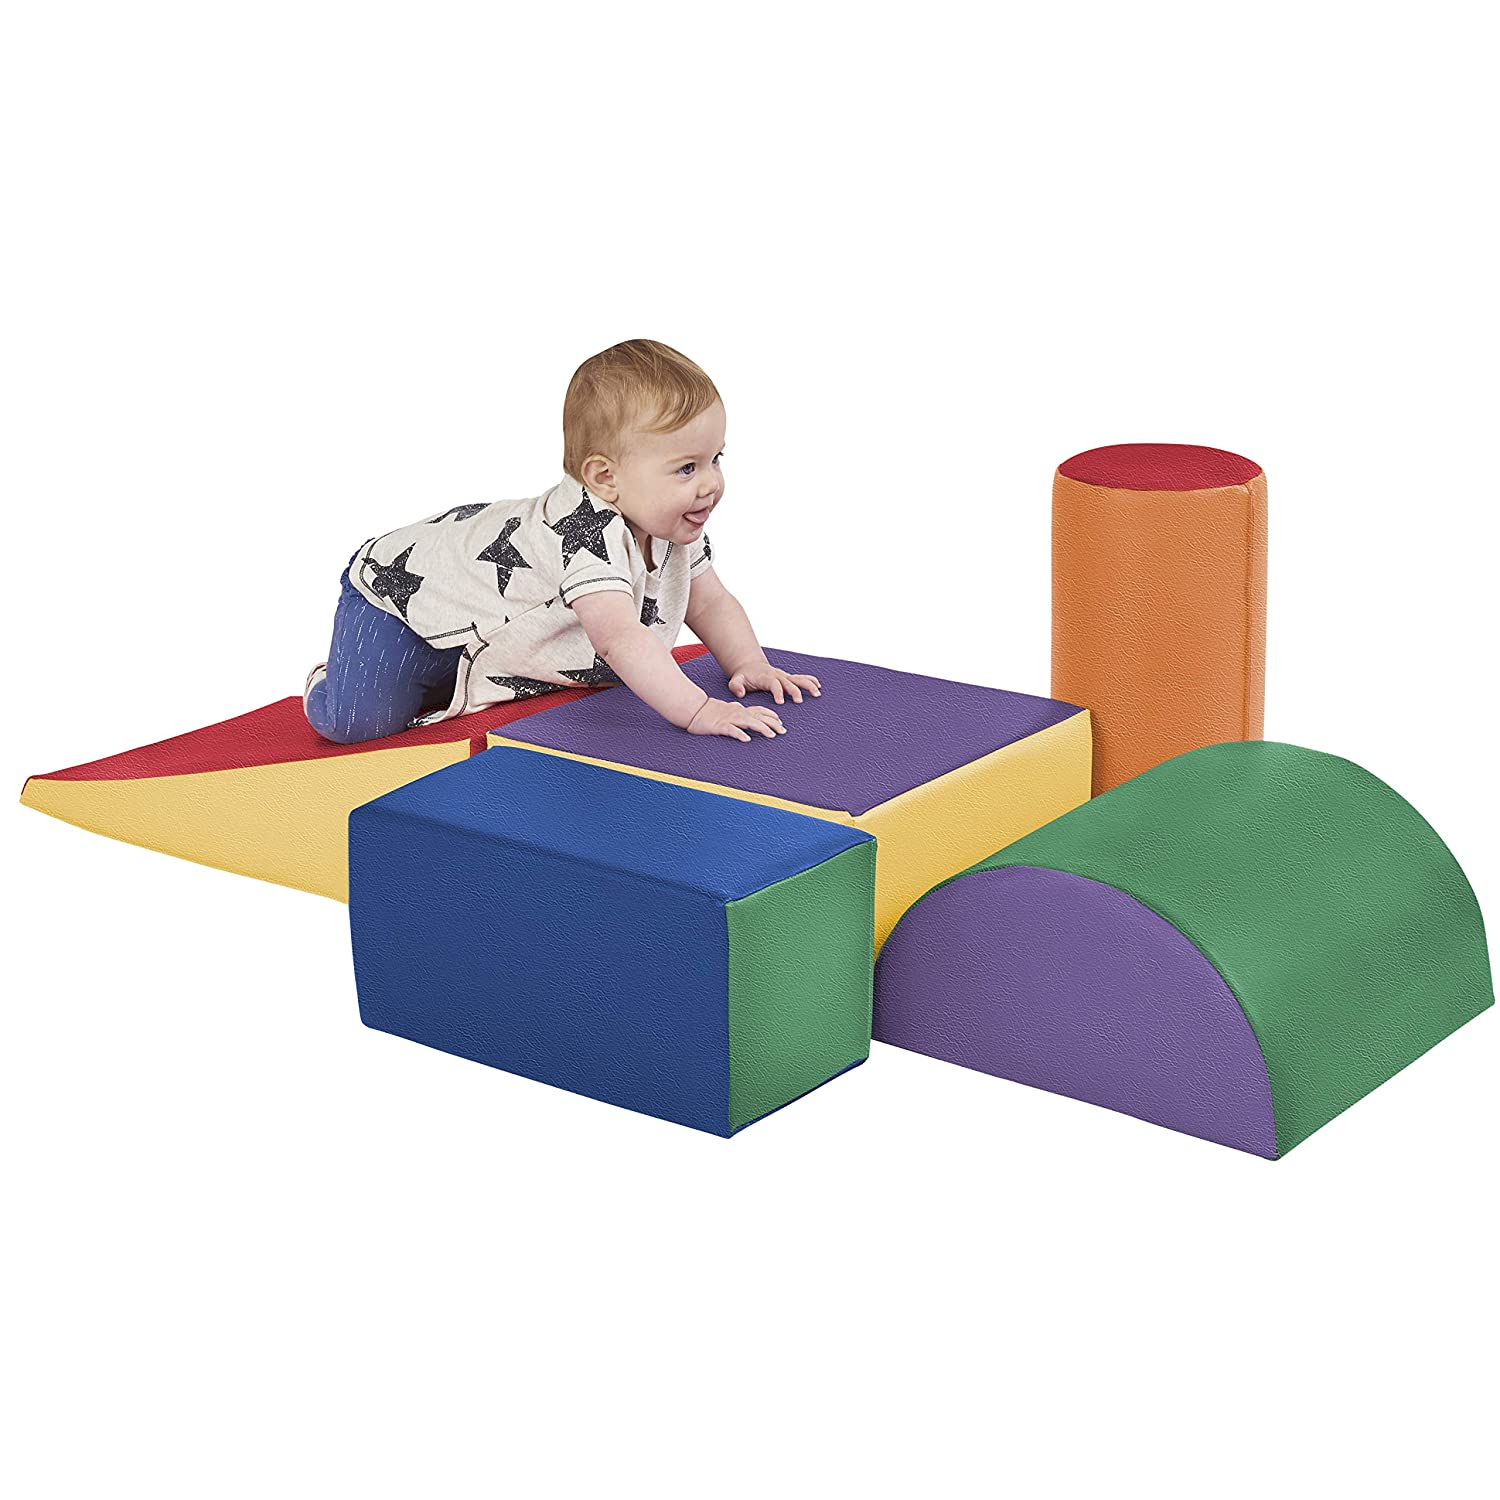 ECR4Kids SoftZone Climb and Crawl Activity Play Set